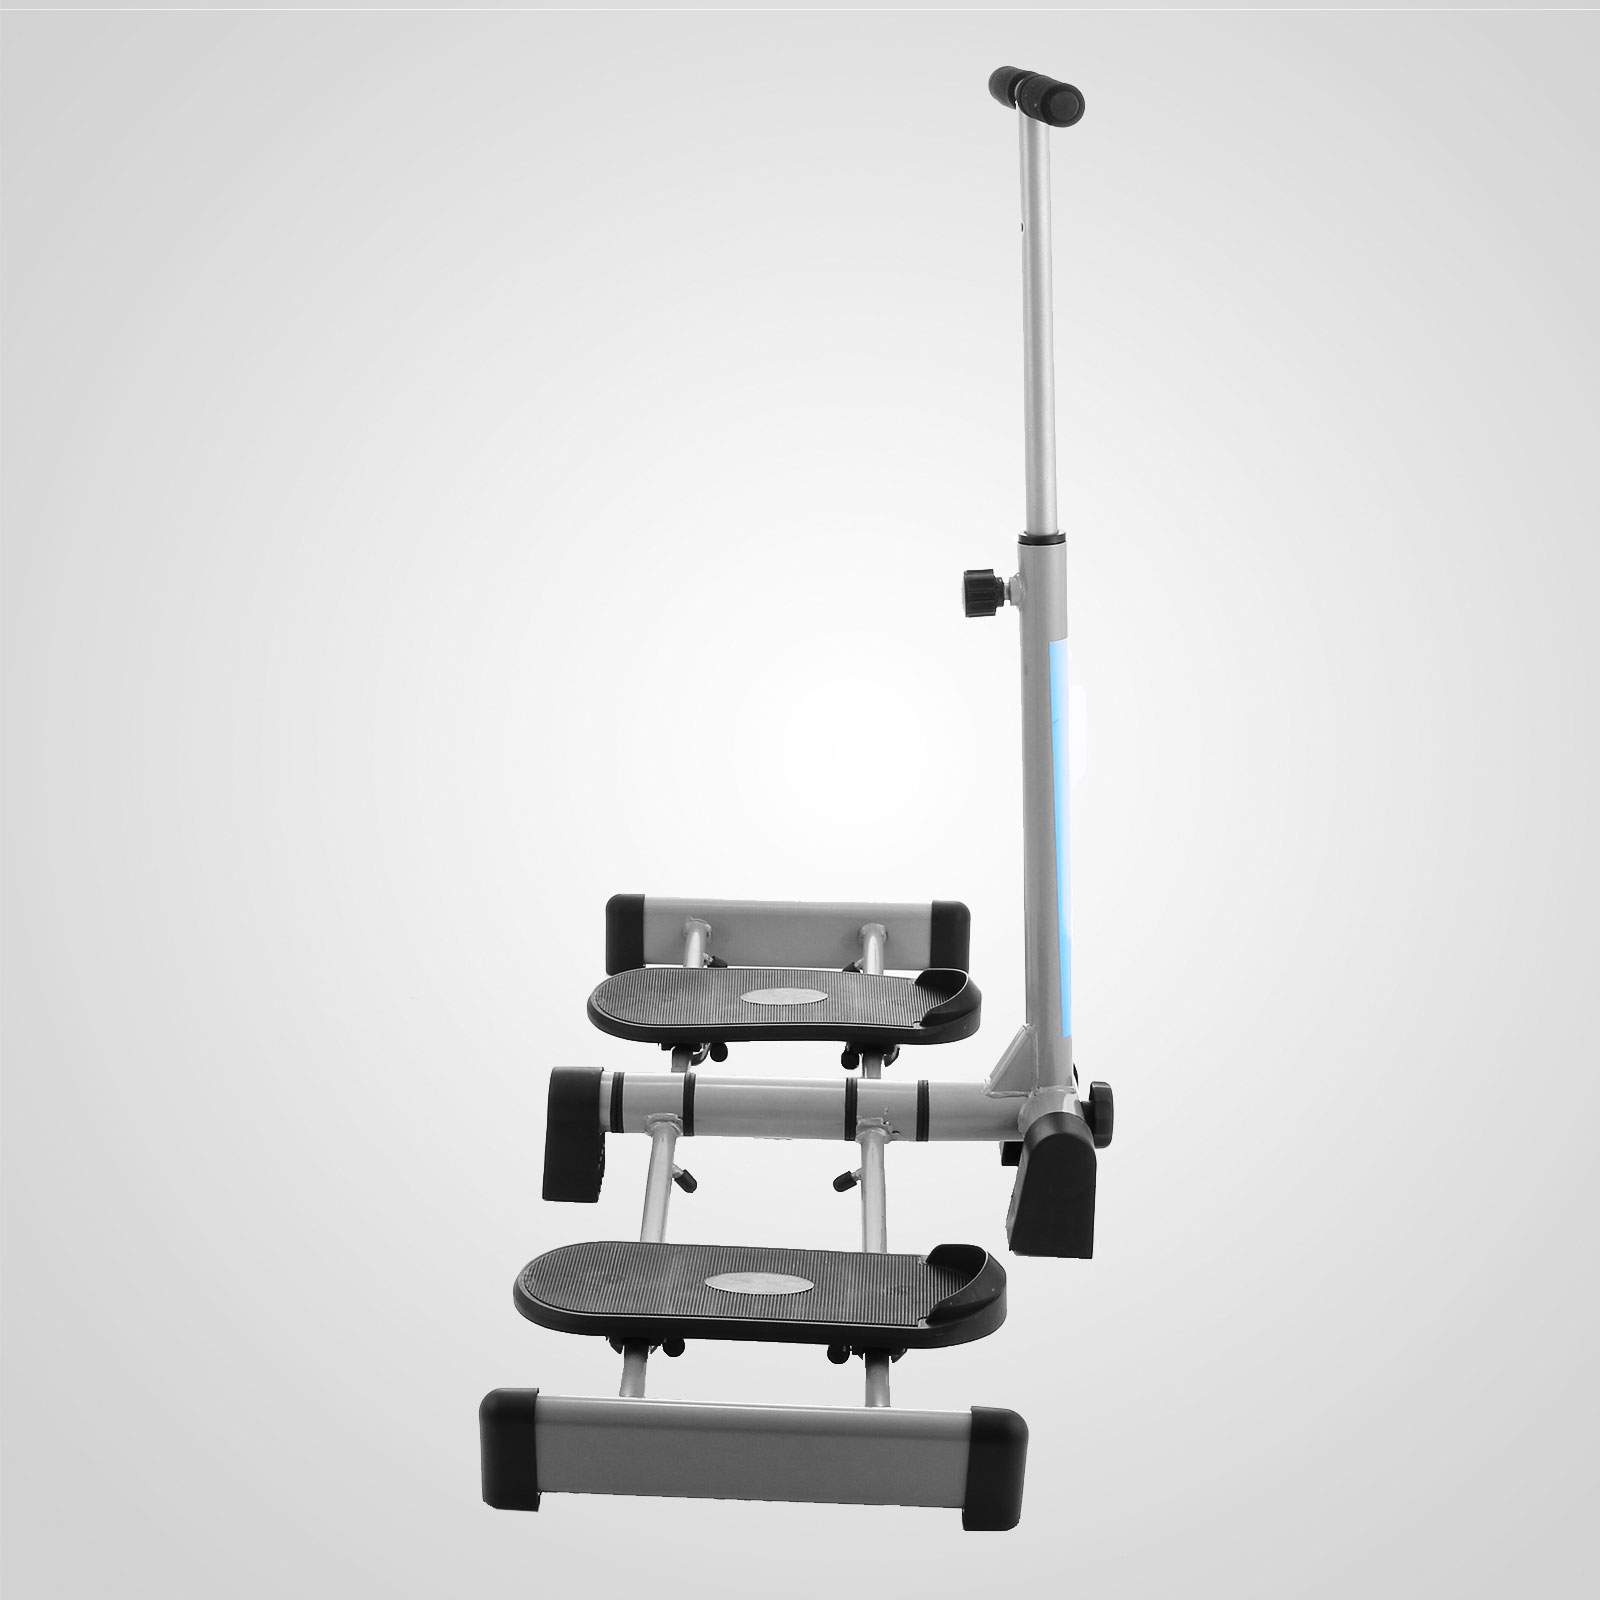 Home Exercise Equipment For Legs: Leg Machine Legs Exercise Tighs Bums Tums Home Trainer